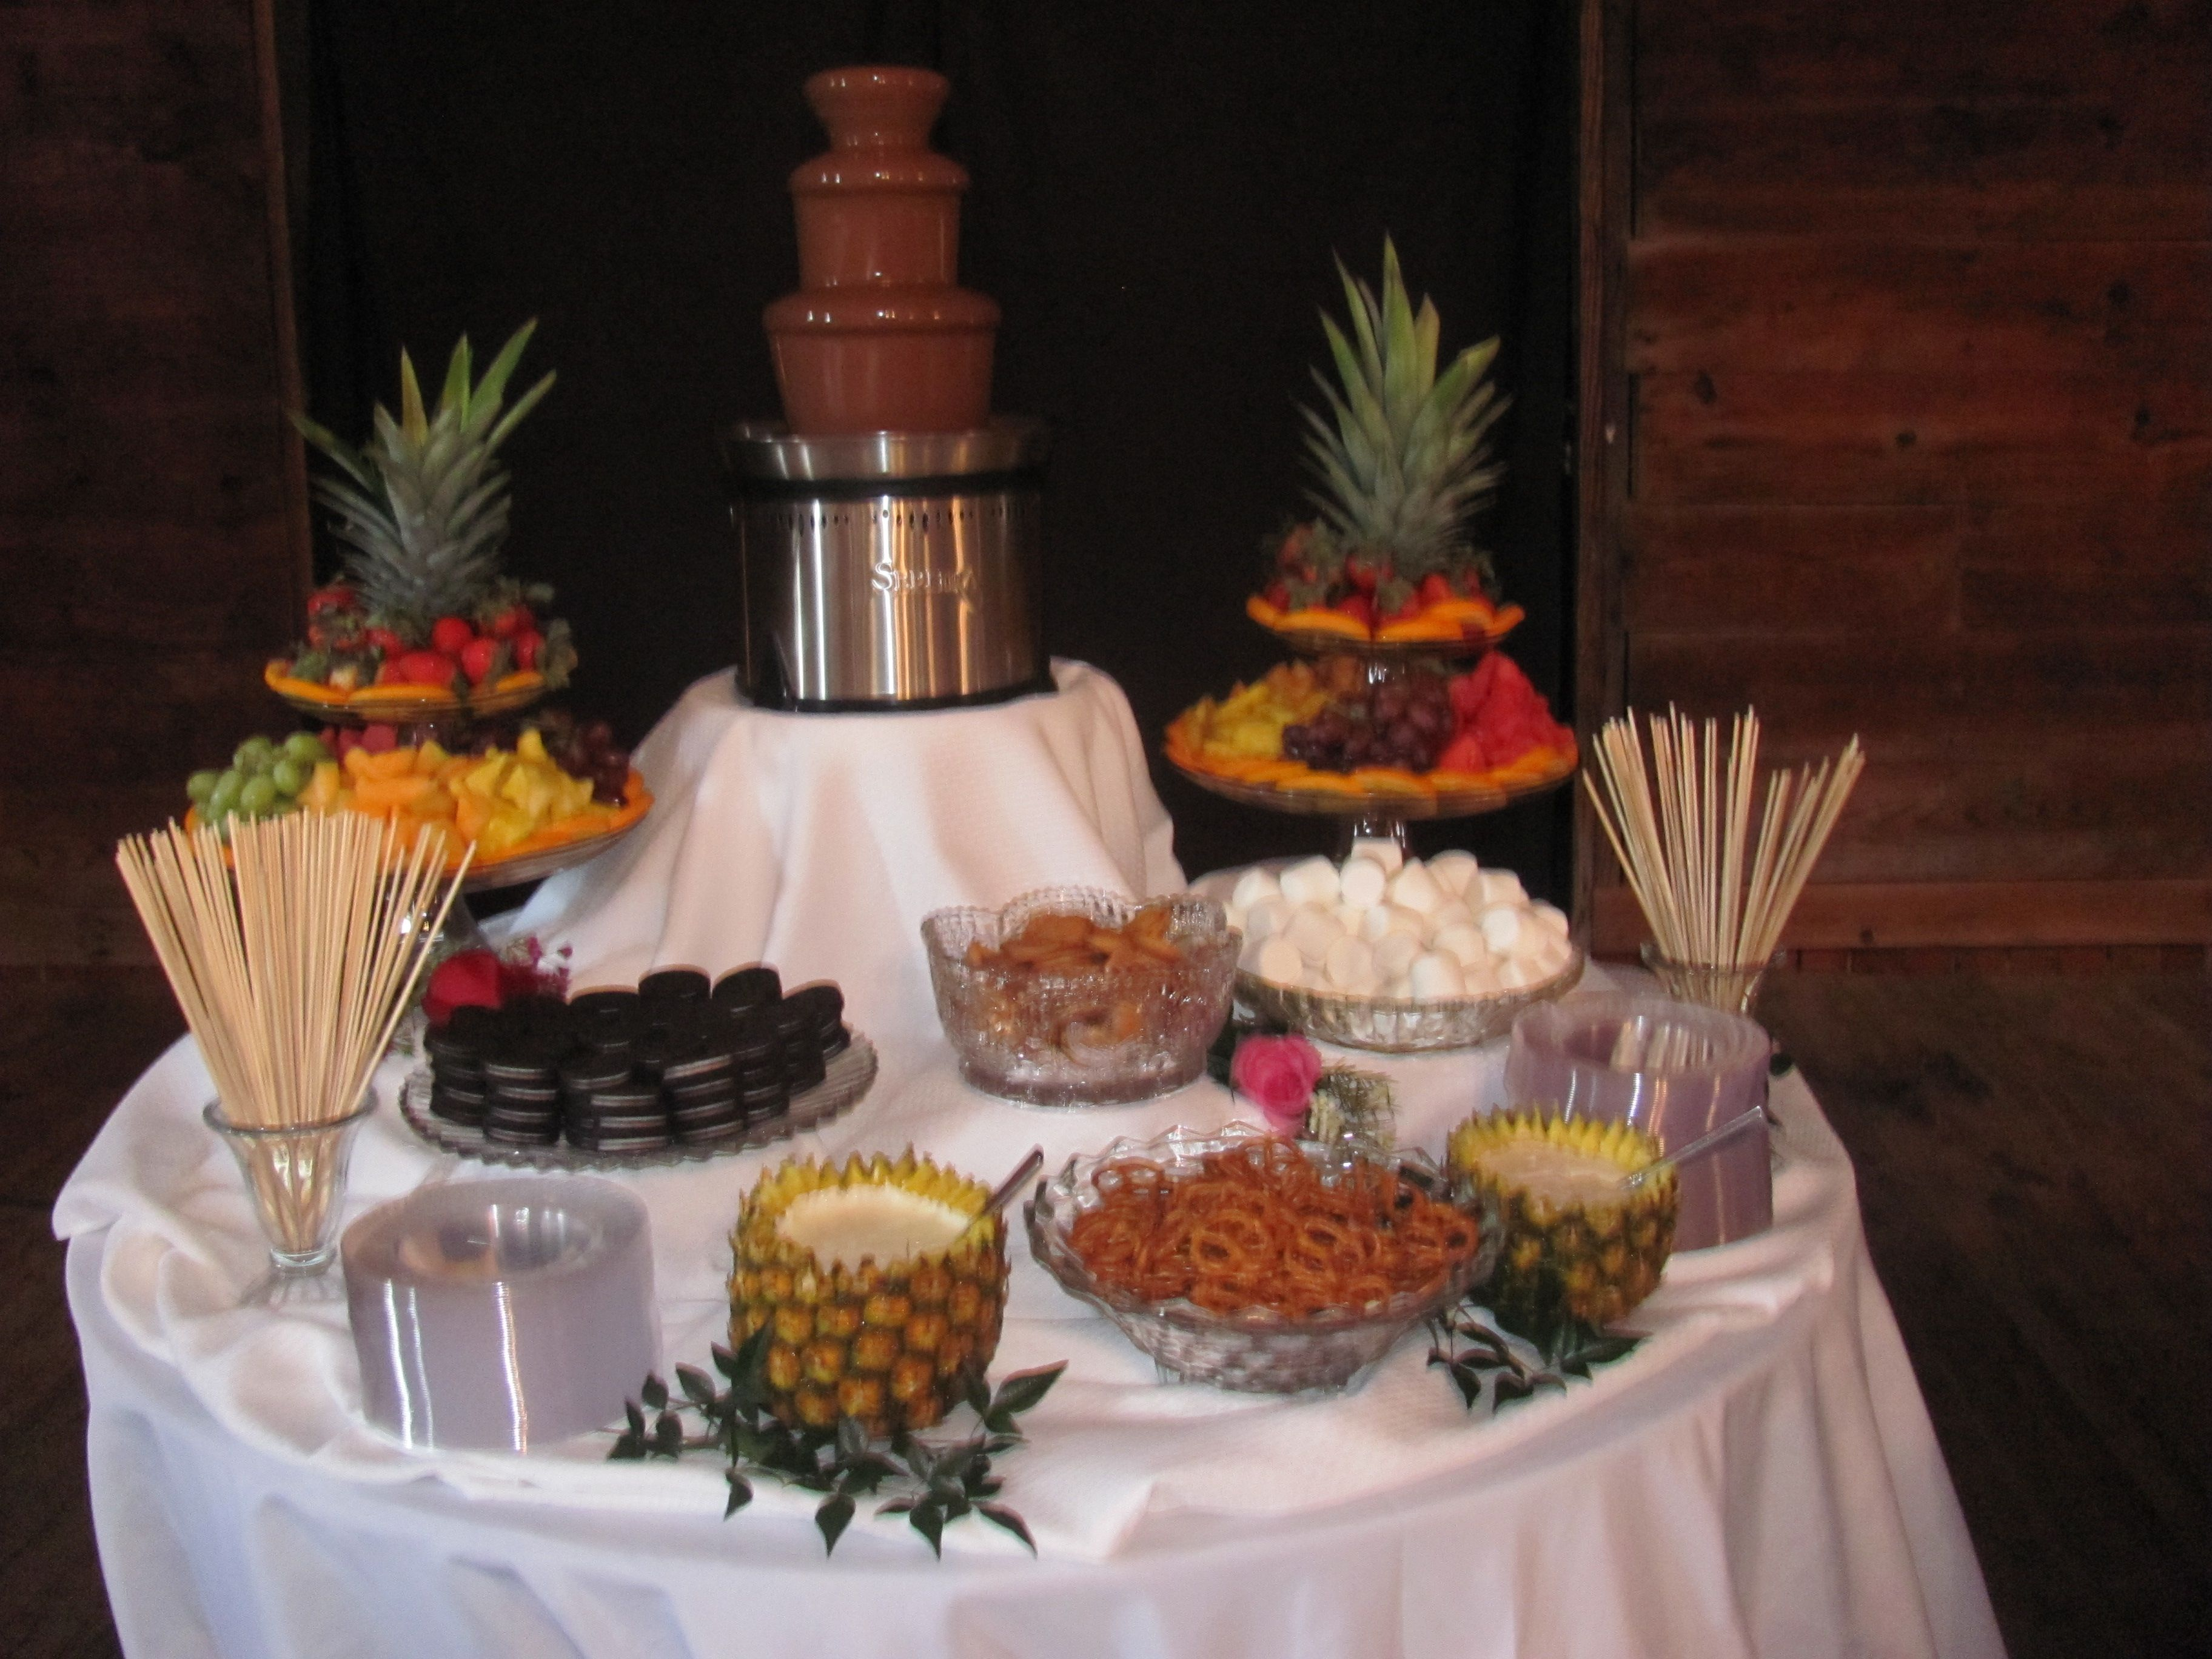 chocolate fountain dipping ideas - Google Search (With ... |Chocolate Fountain Ideas